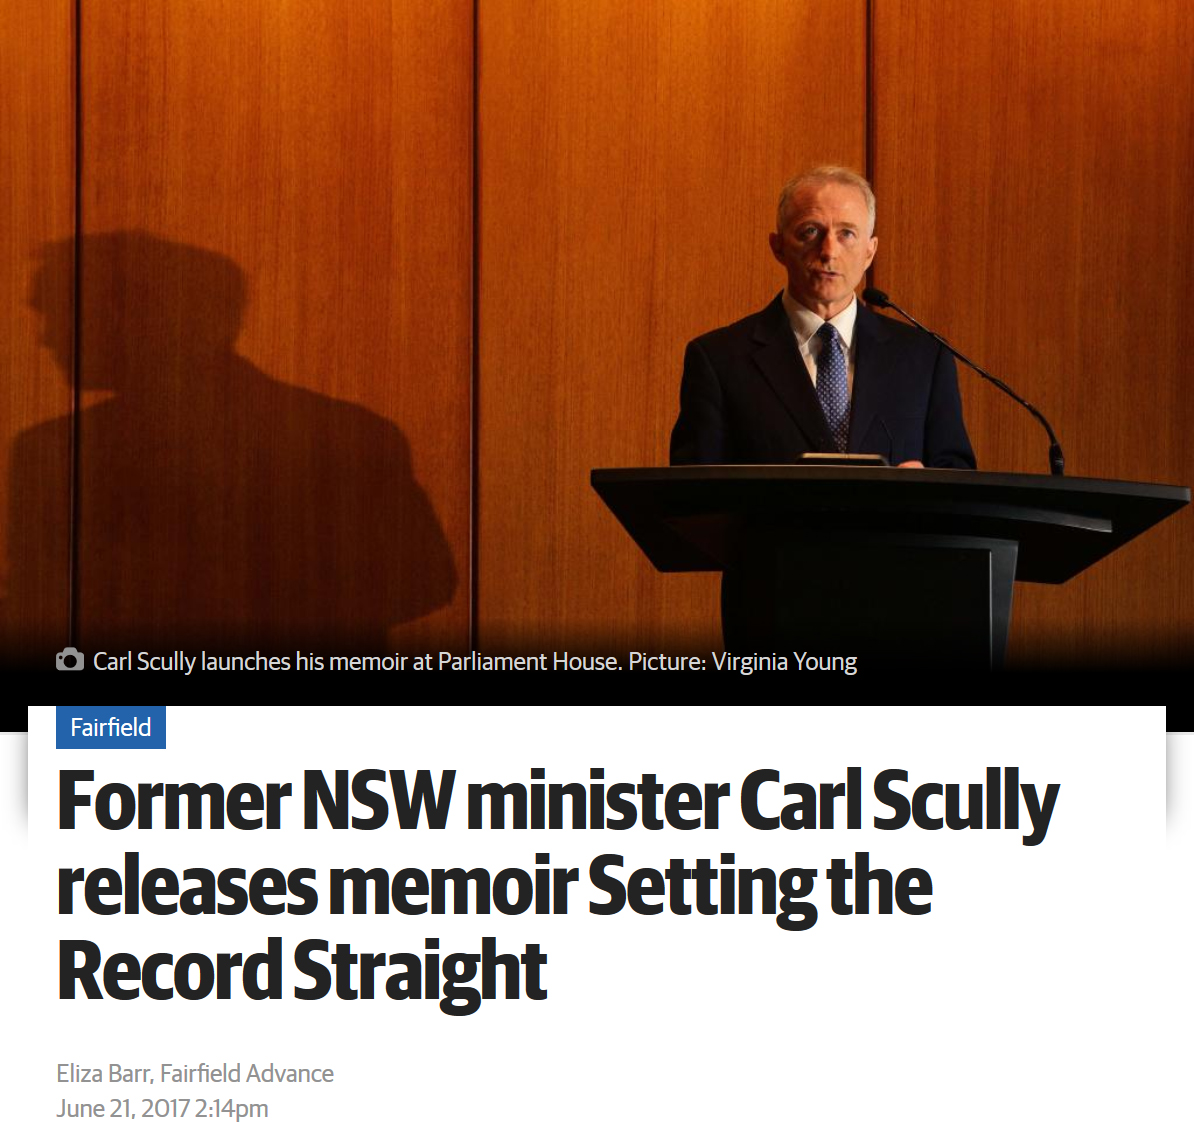 Former NSW minister Carl Scully releases memoir Setting the Record Straight